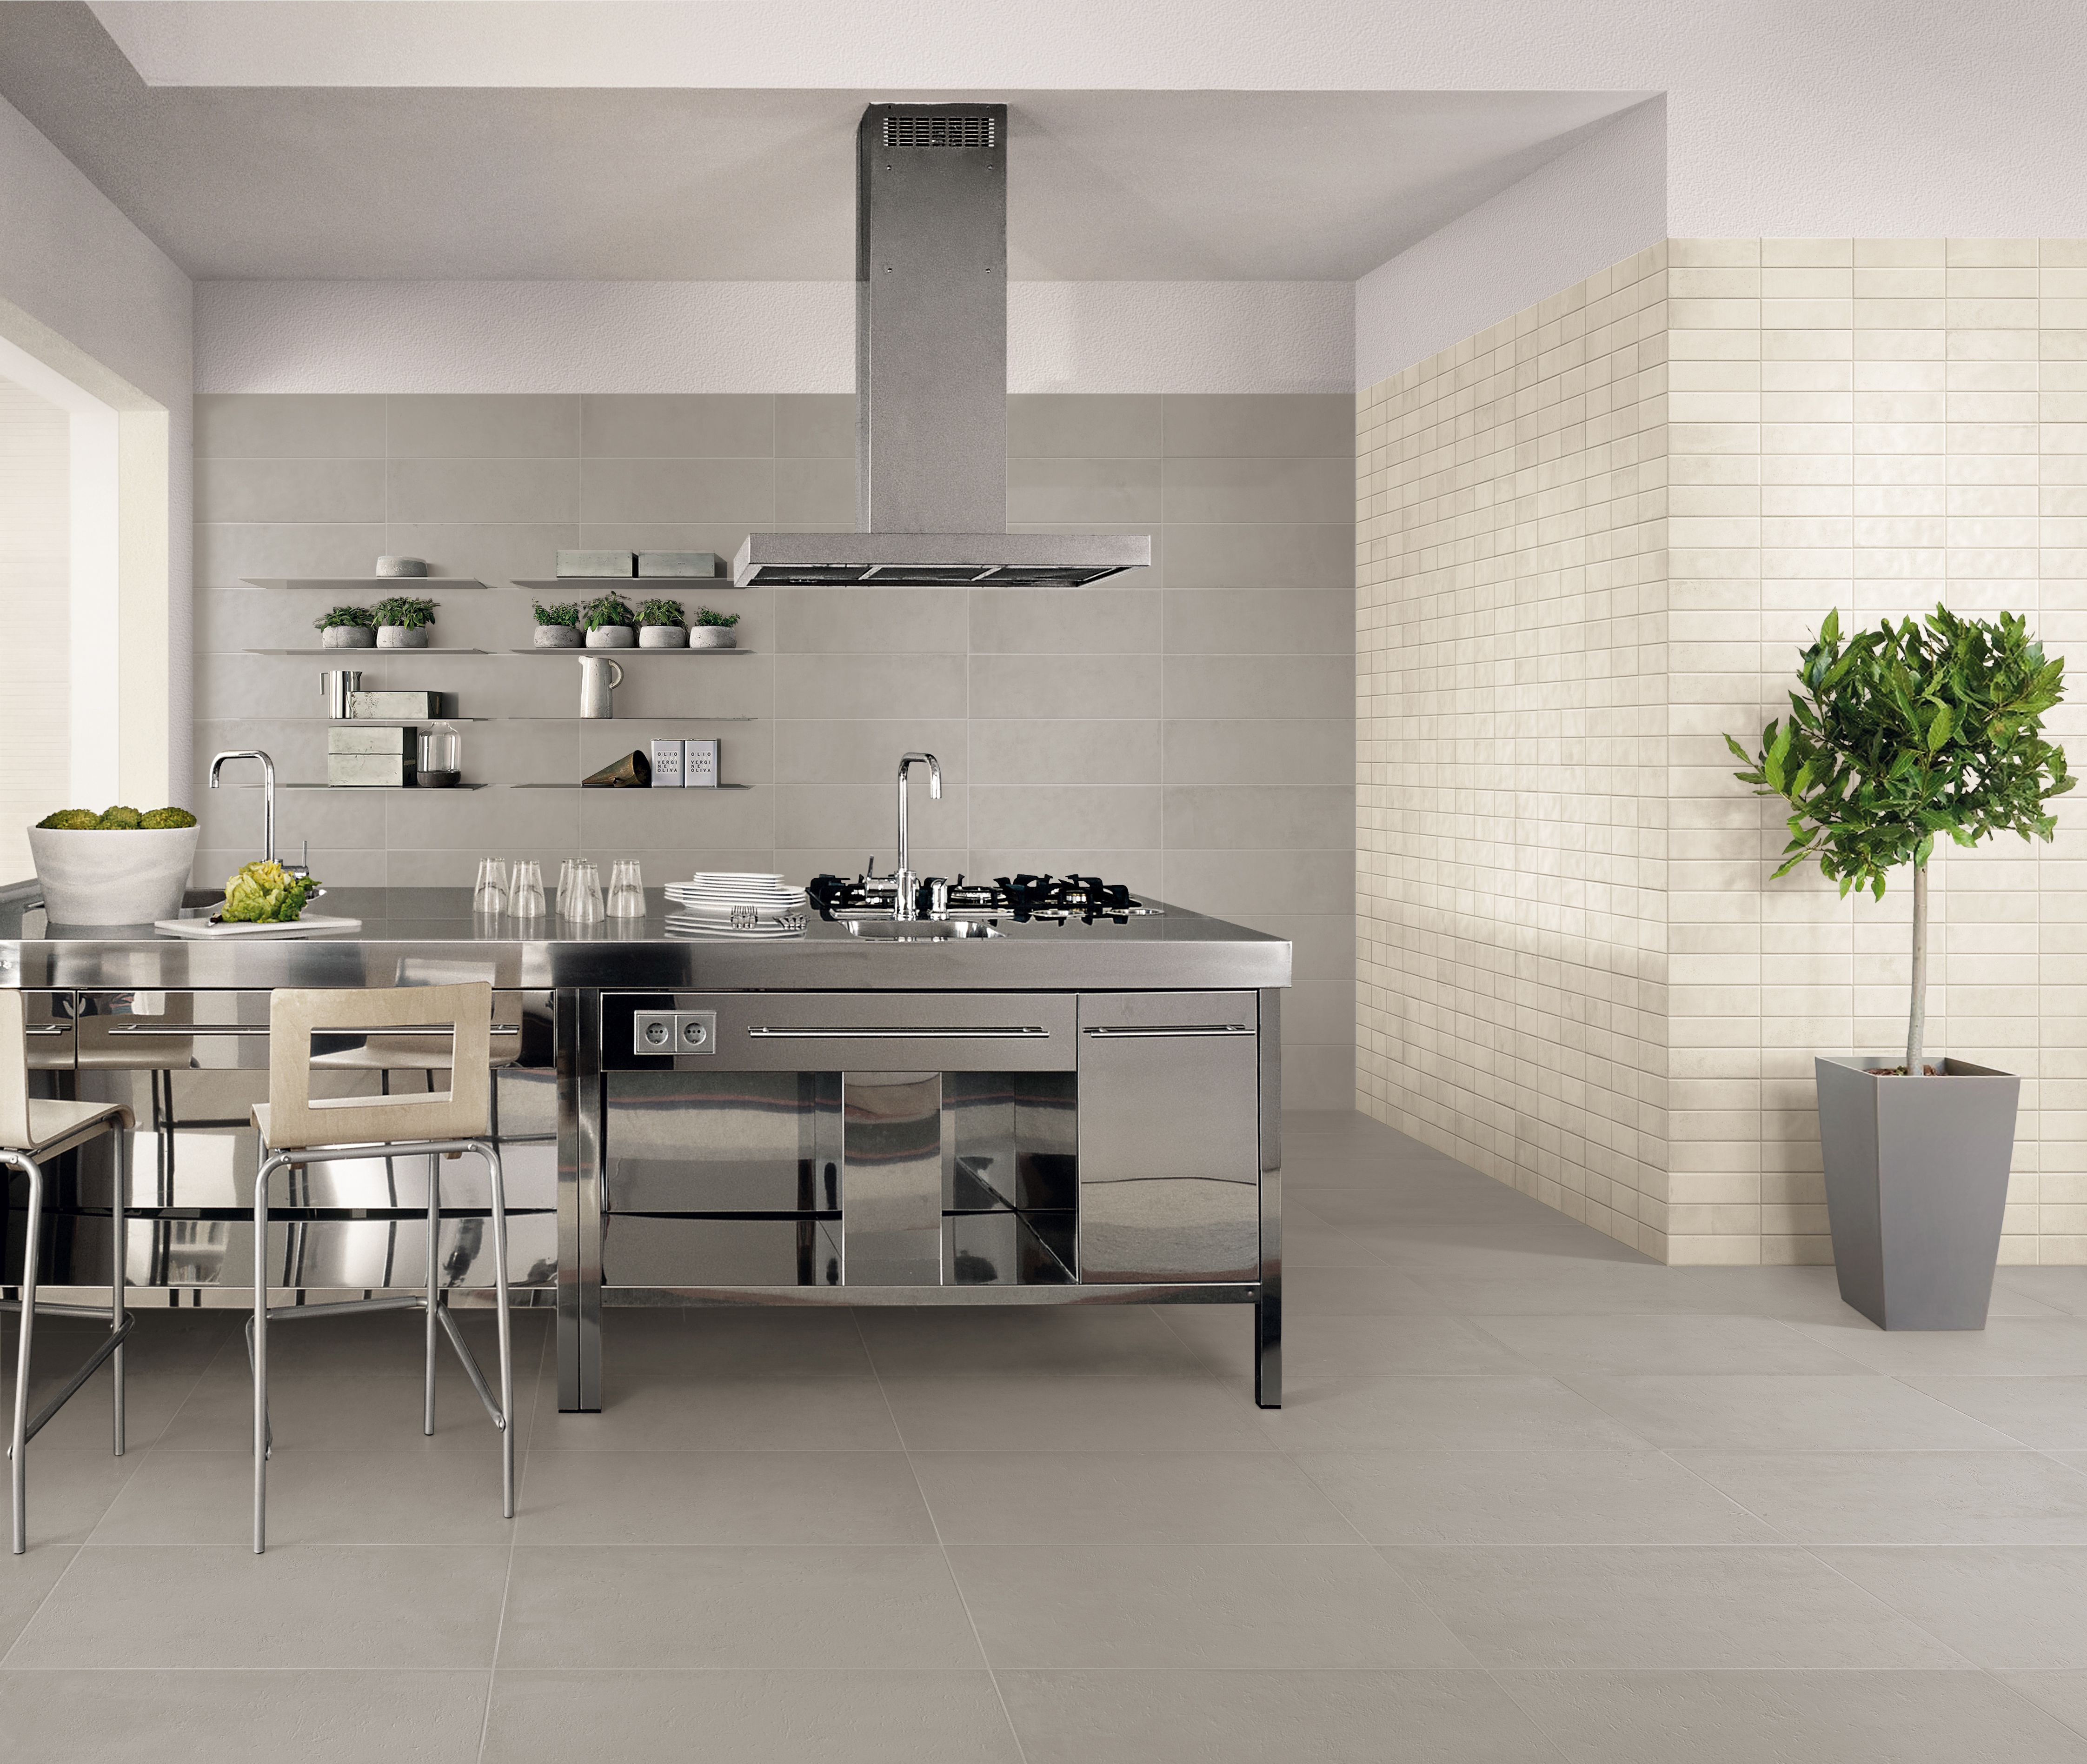 Kitchen Tiles Melbourne glance tiles melbourne| pavé tile co.